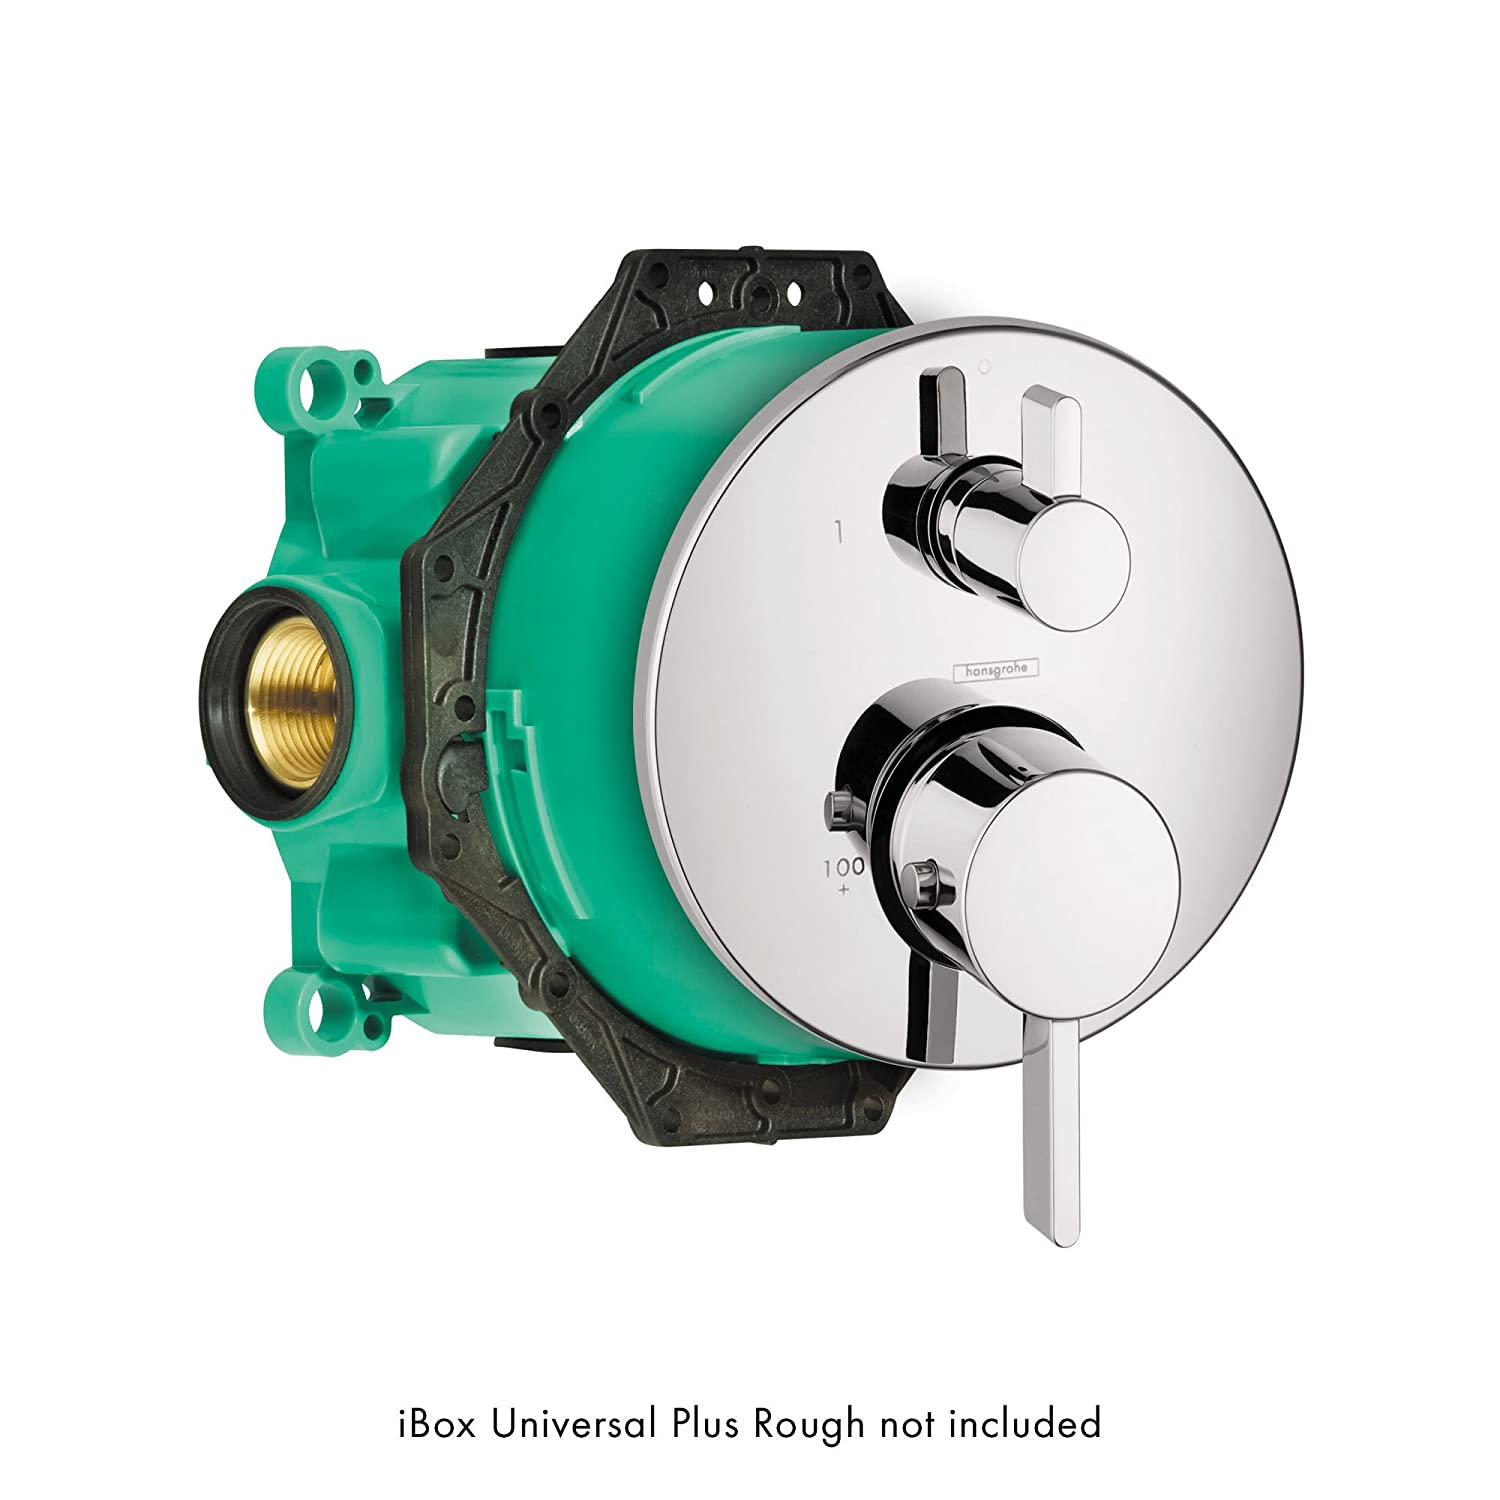 Hansgrohe Ibox Universal Leak Preventing Valve Rough In With Service Stop For Standard Shower Trims Hg01850181